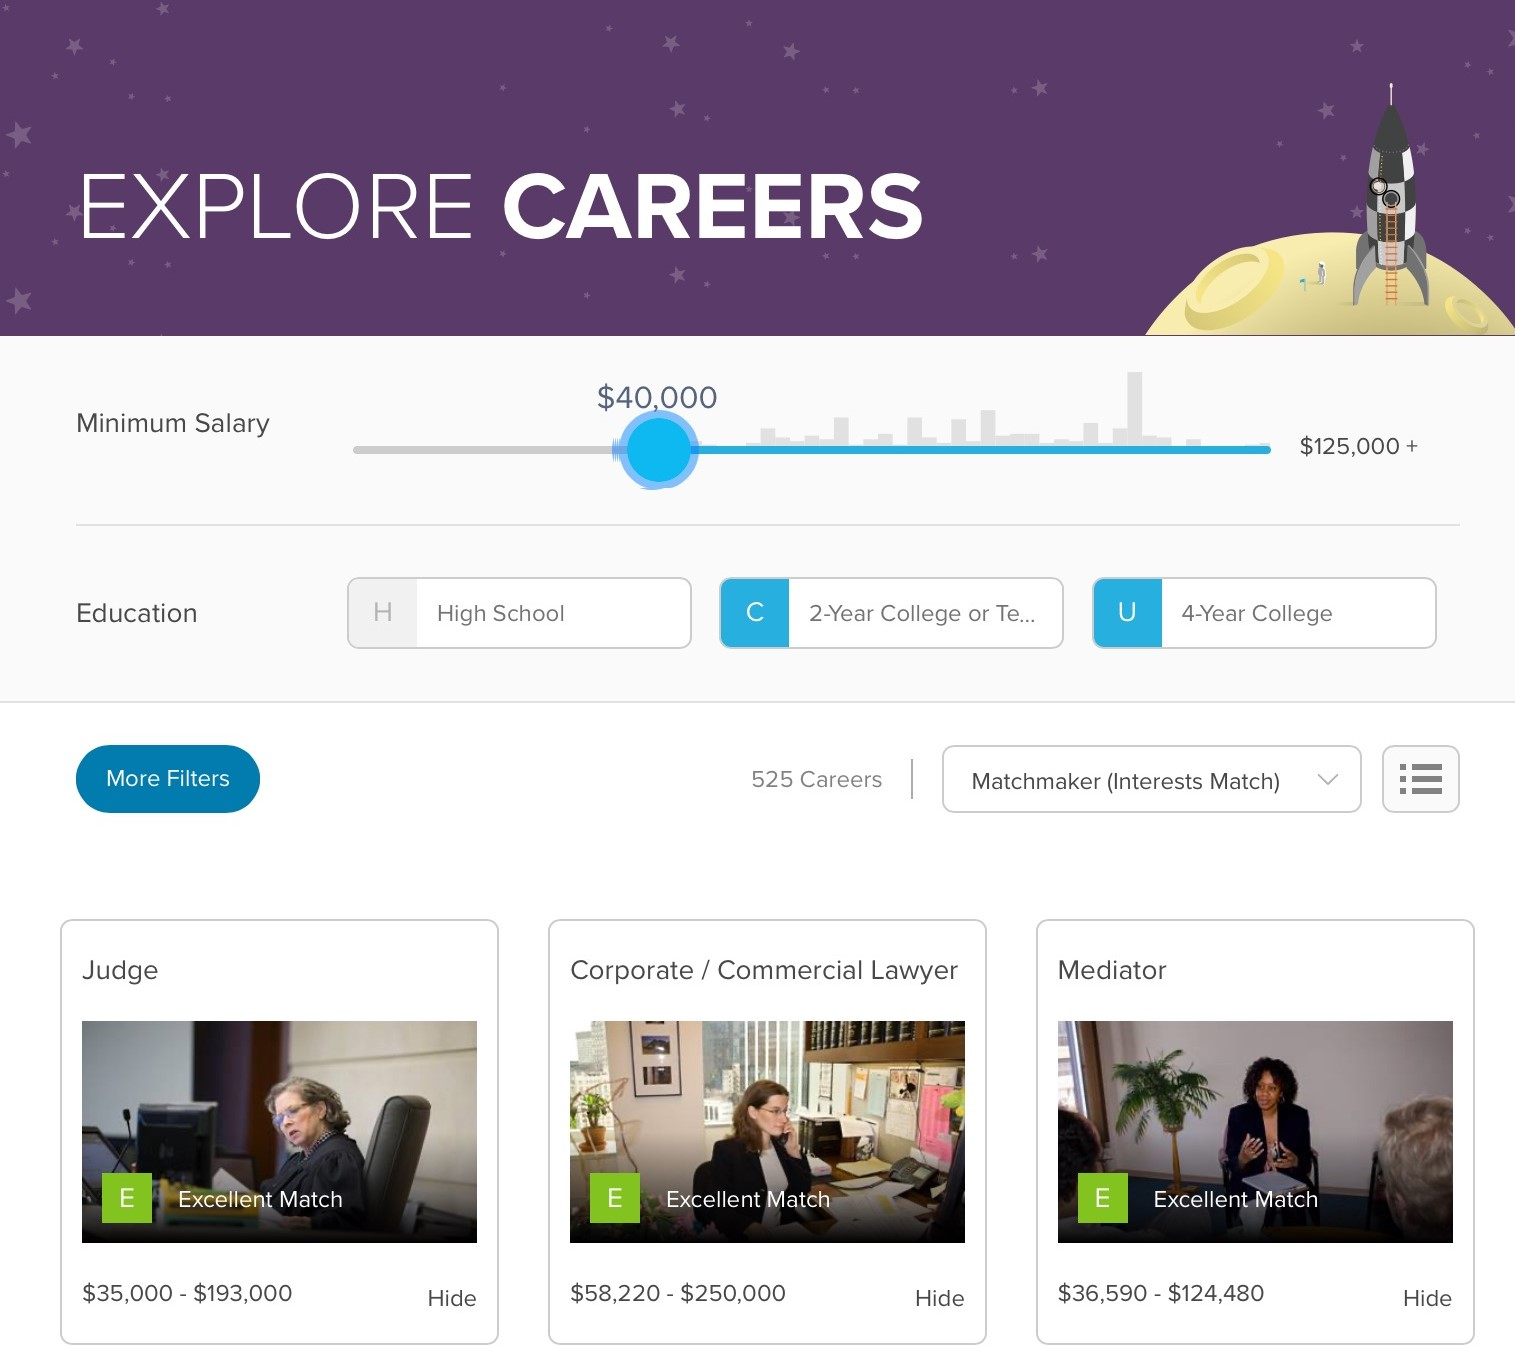 Xello - Explore Careers